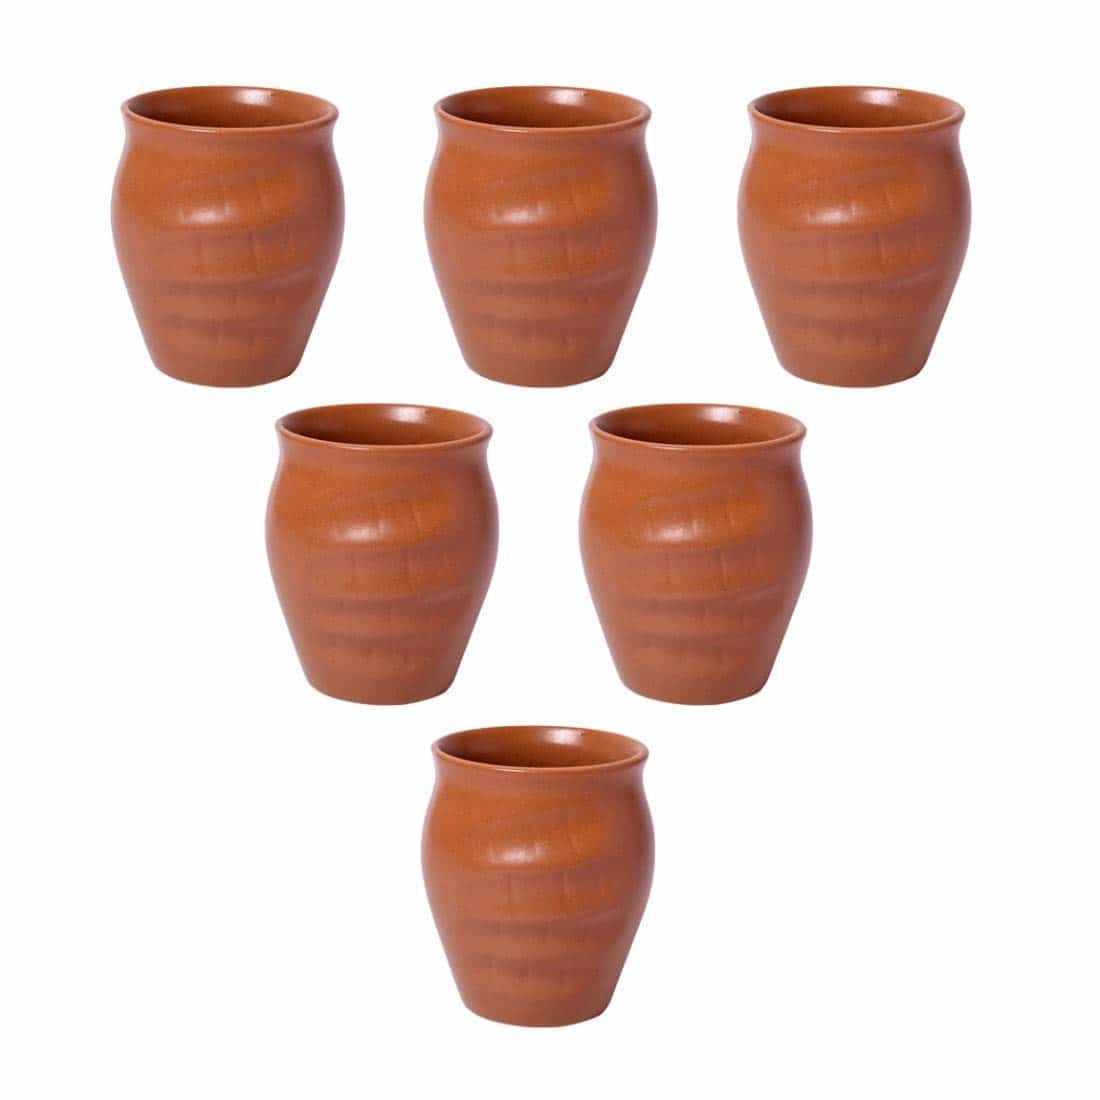 Kraftmania Re-Useable Ceramic Kullad for Hot & Cold Beverages - Set of 6  Here are some kullad and cups of low price from the house of Kraftmania.  #natural #kullad #cups #mug   https://www.amazon.in/dp/B07H5DGWZ7